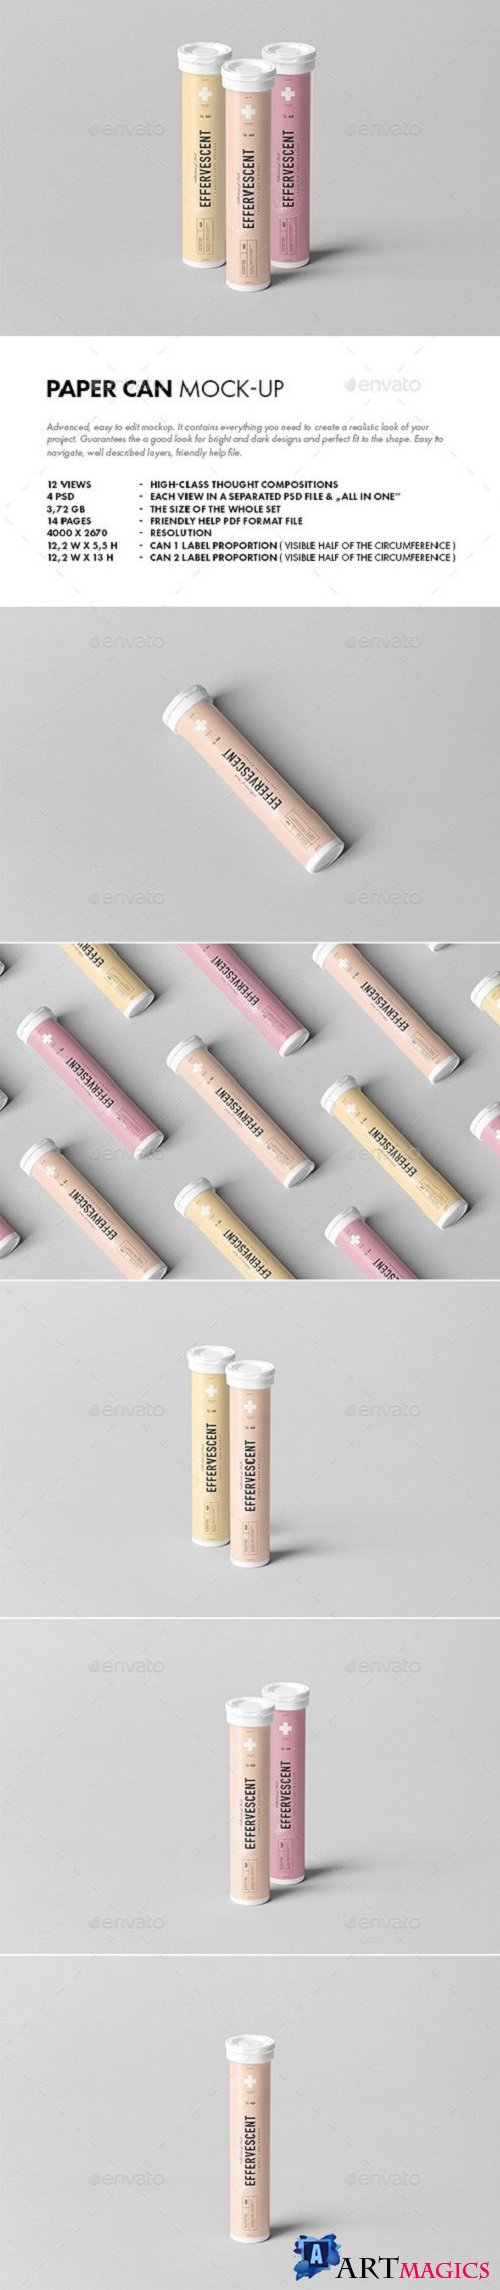 Effervescent Tablets Tube Mock-up - 21441844